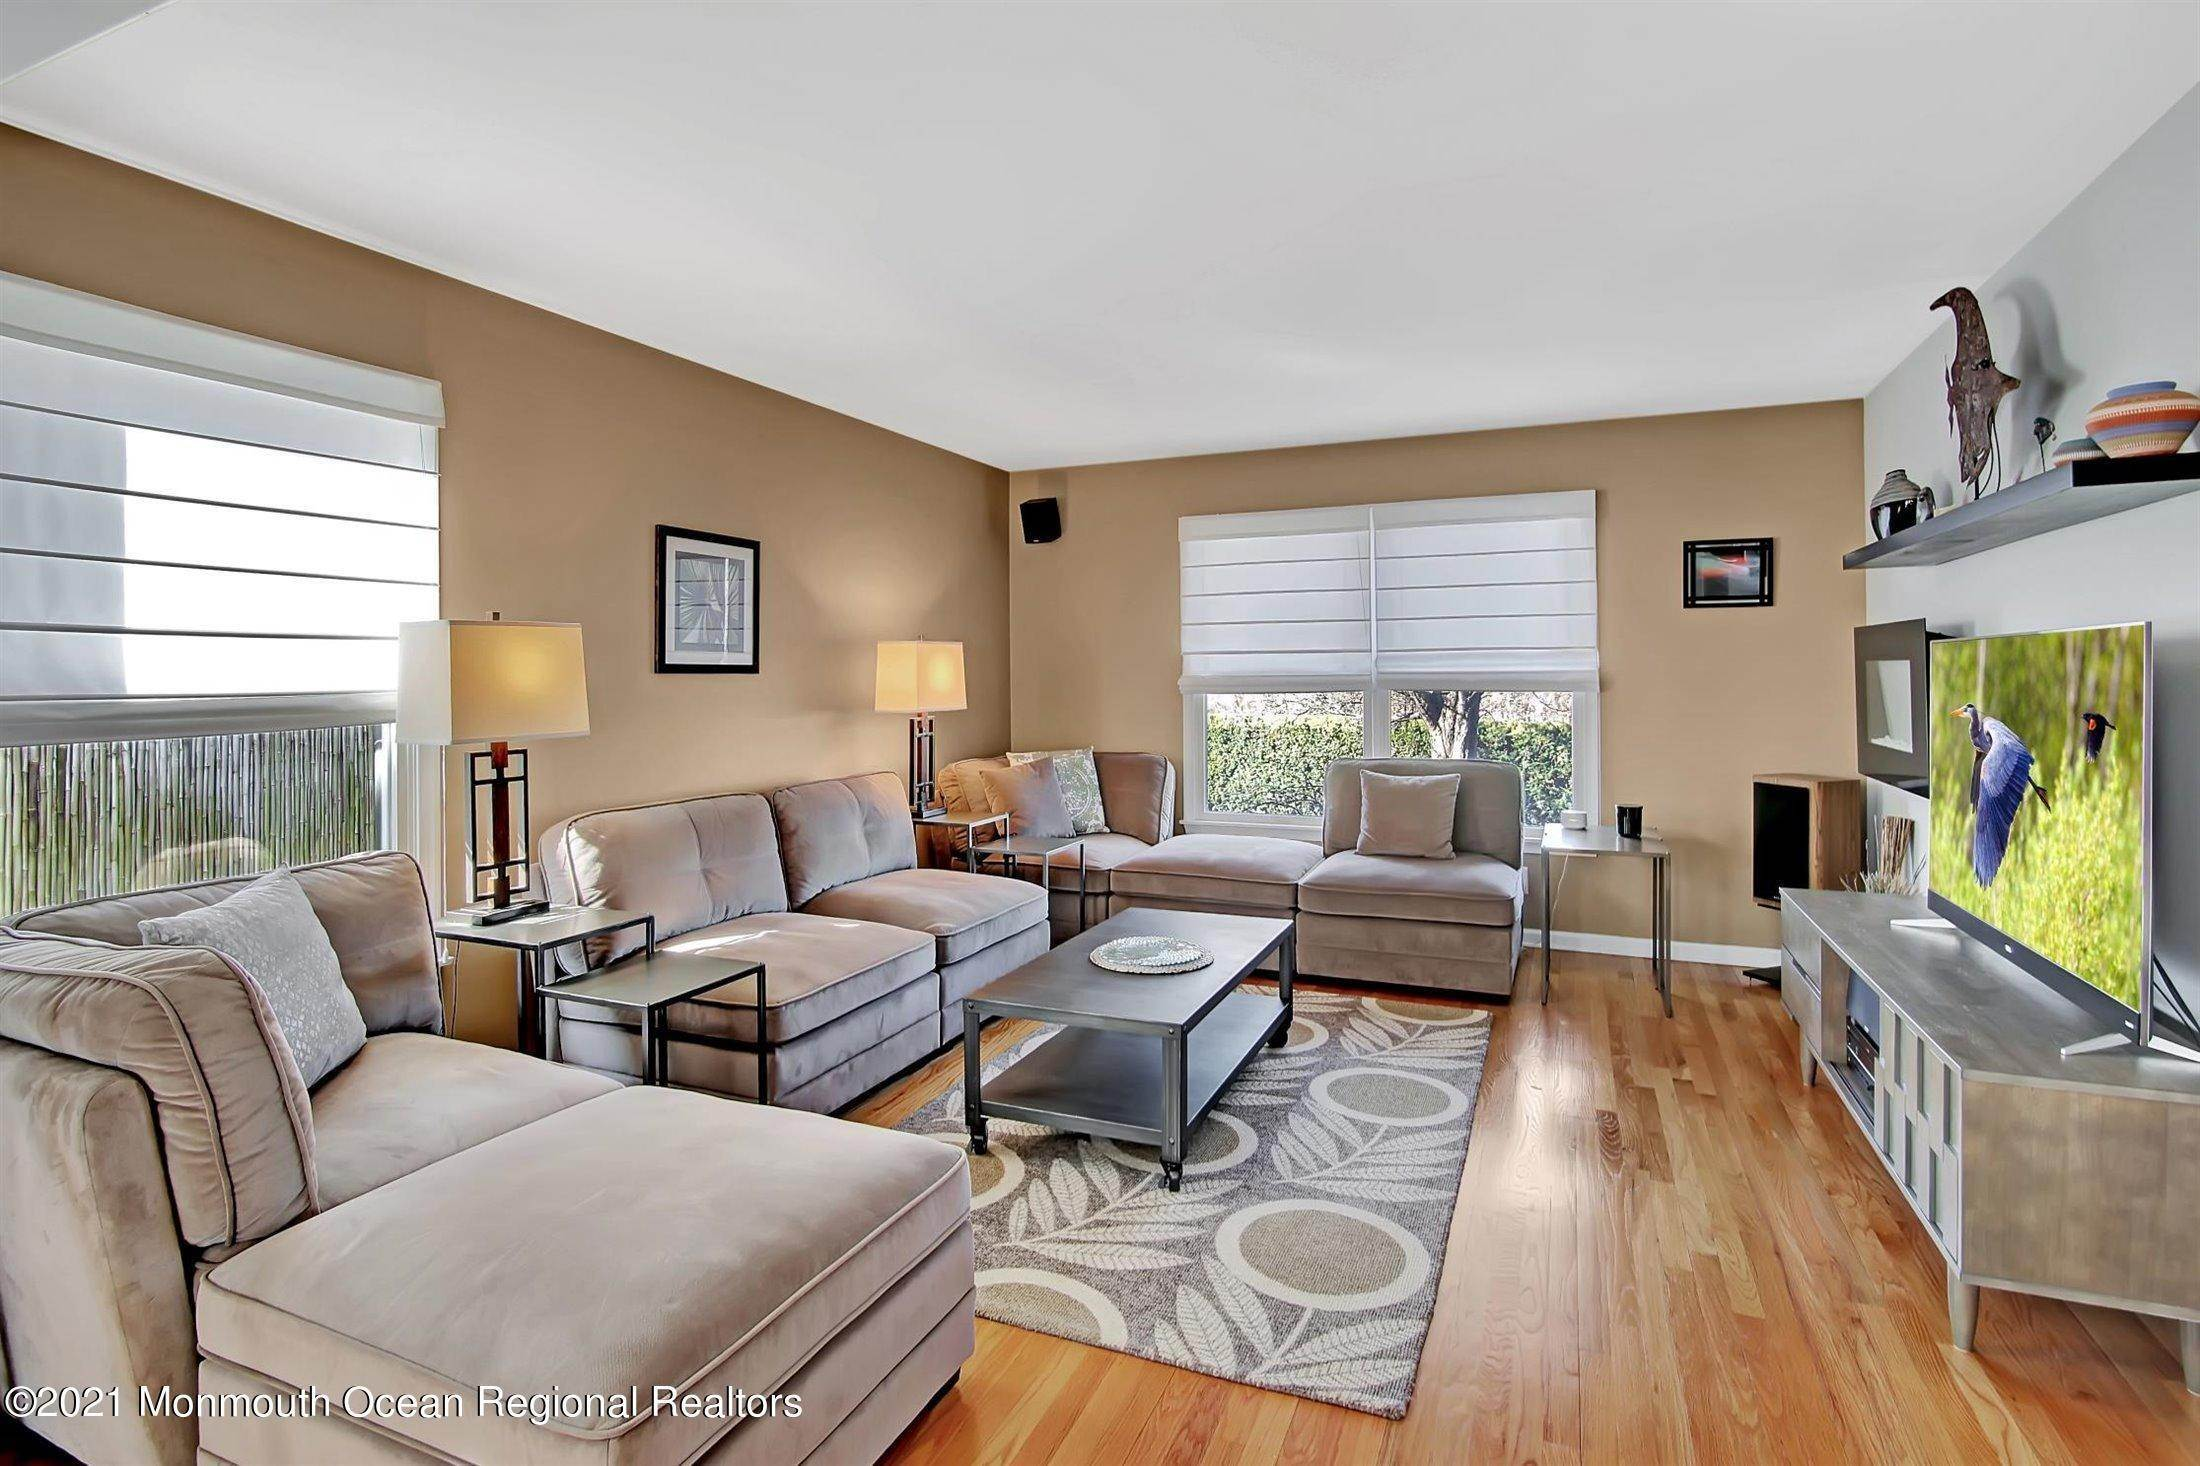 7. Single Family Homes for Sale at 361 Sairs Avenue Long Branch, New Jersey 07740 United States